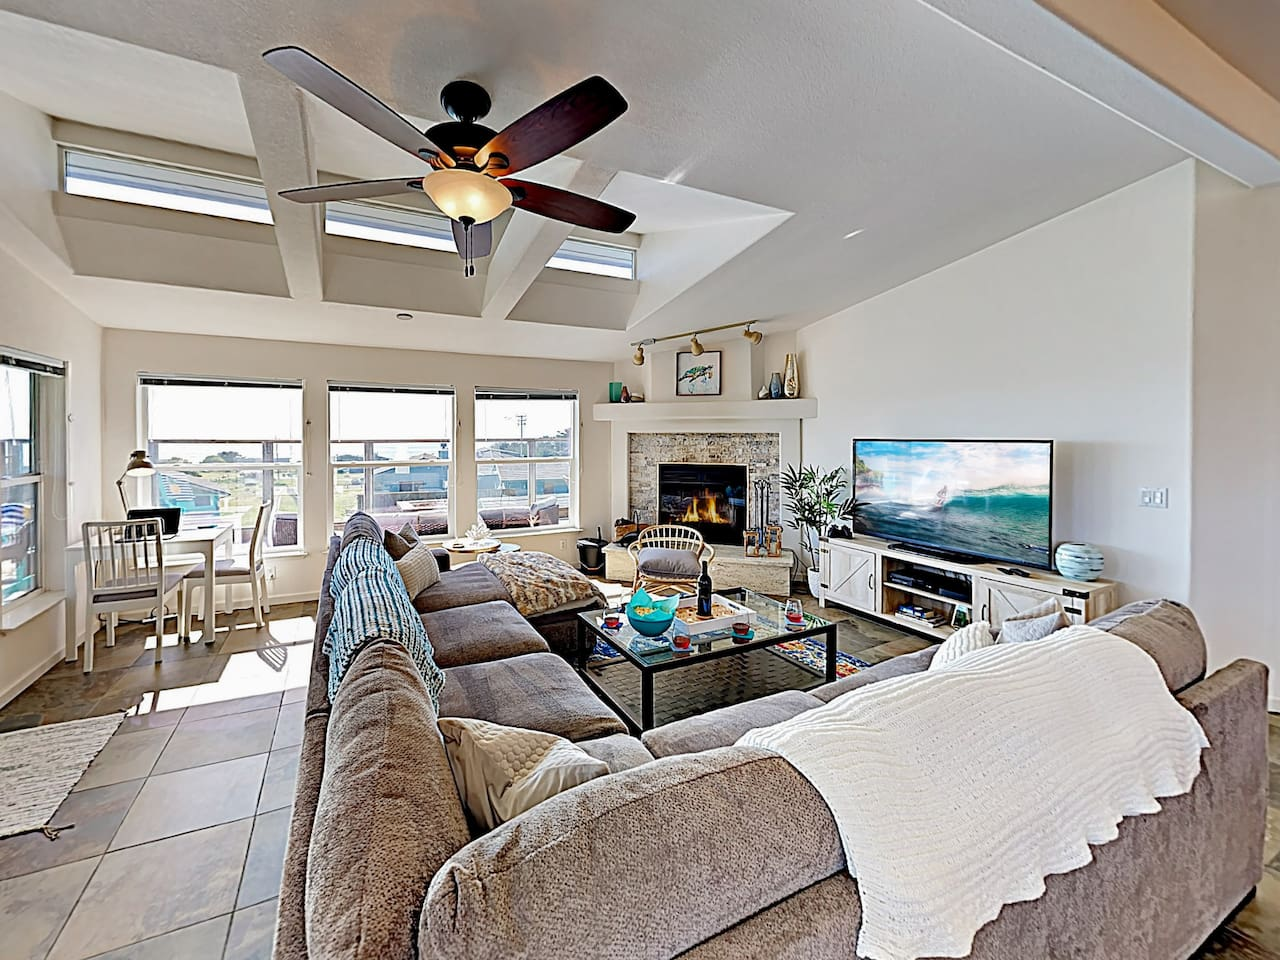 Welcome to Bodega Bay! This home is professionally managed by TurnKey Vacation Rentals.